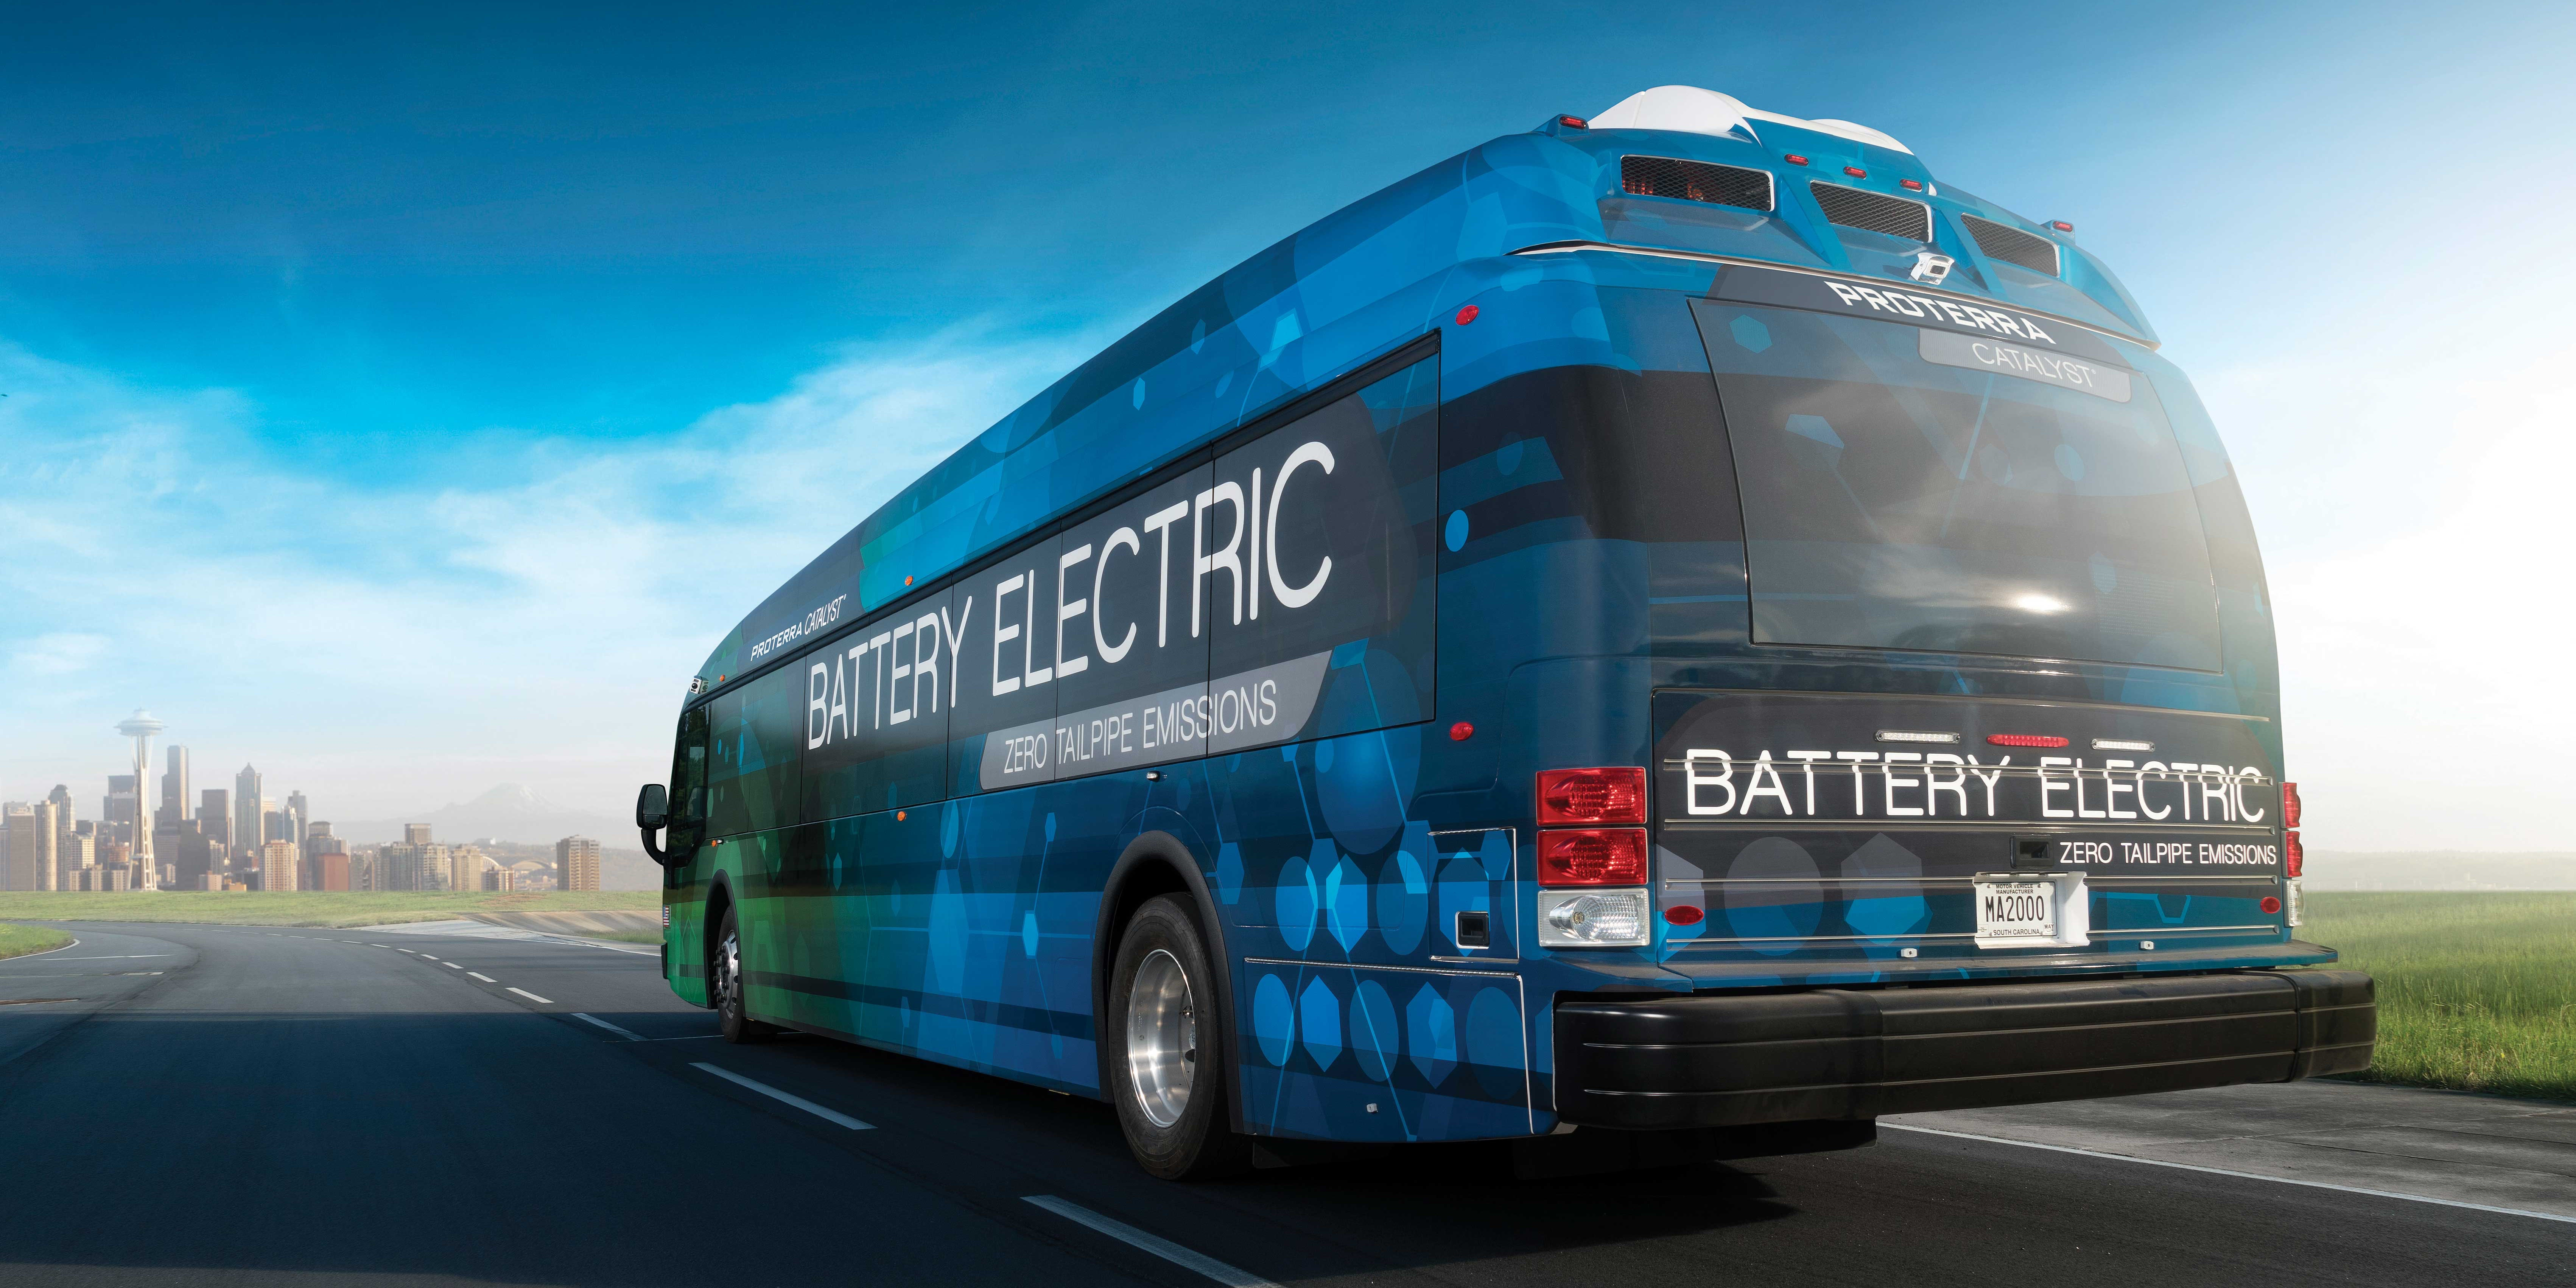 Colorado getting 24 new electric buses through Volkswagen settlement, replacing diesel buses